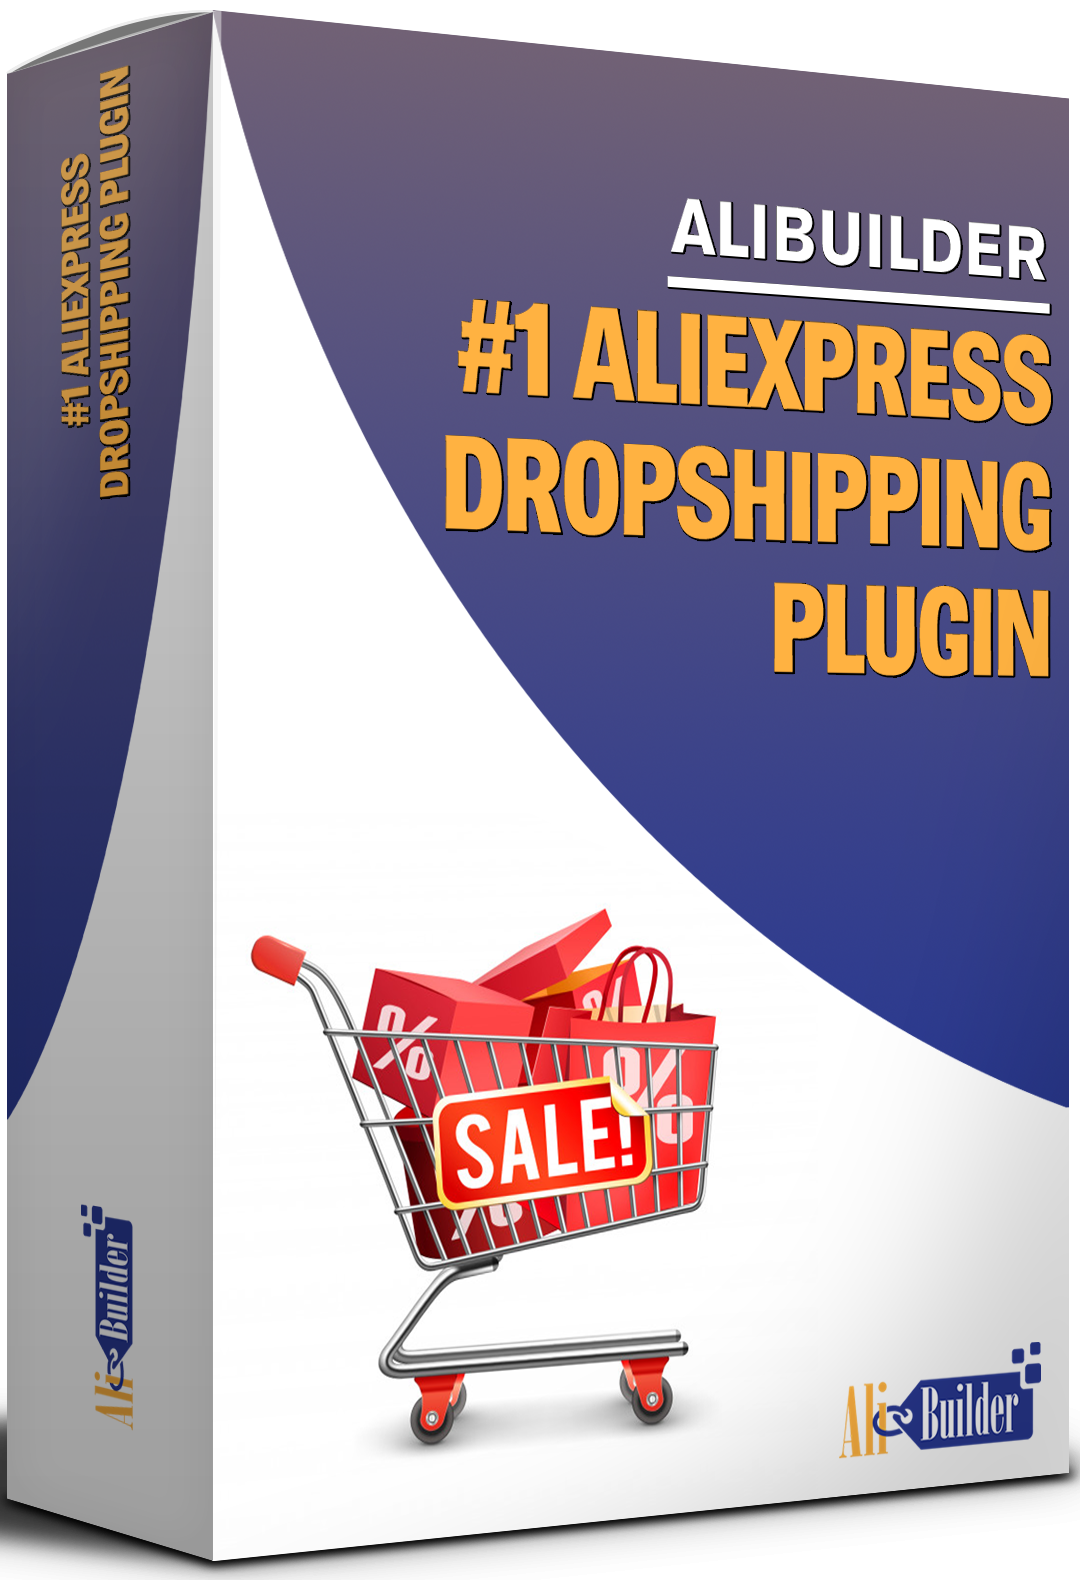 AliBuilder — New Dropshipping Plugin To Find And Import Hot